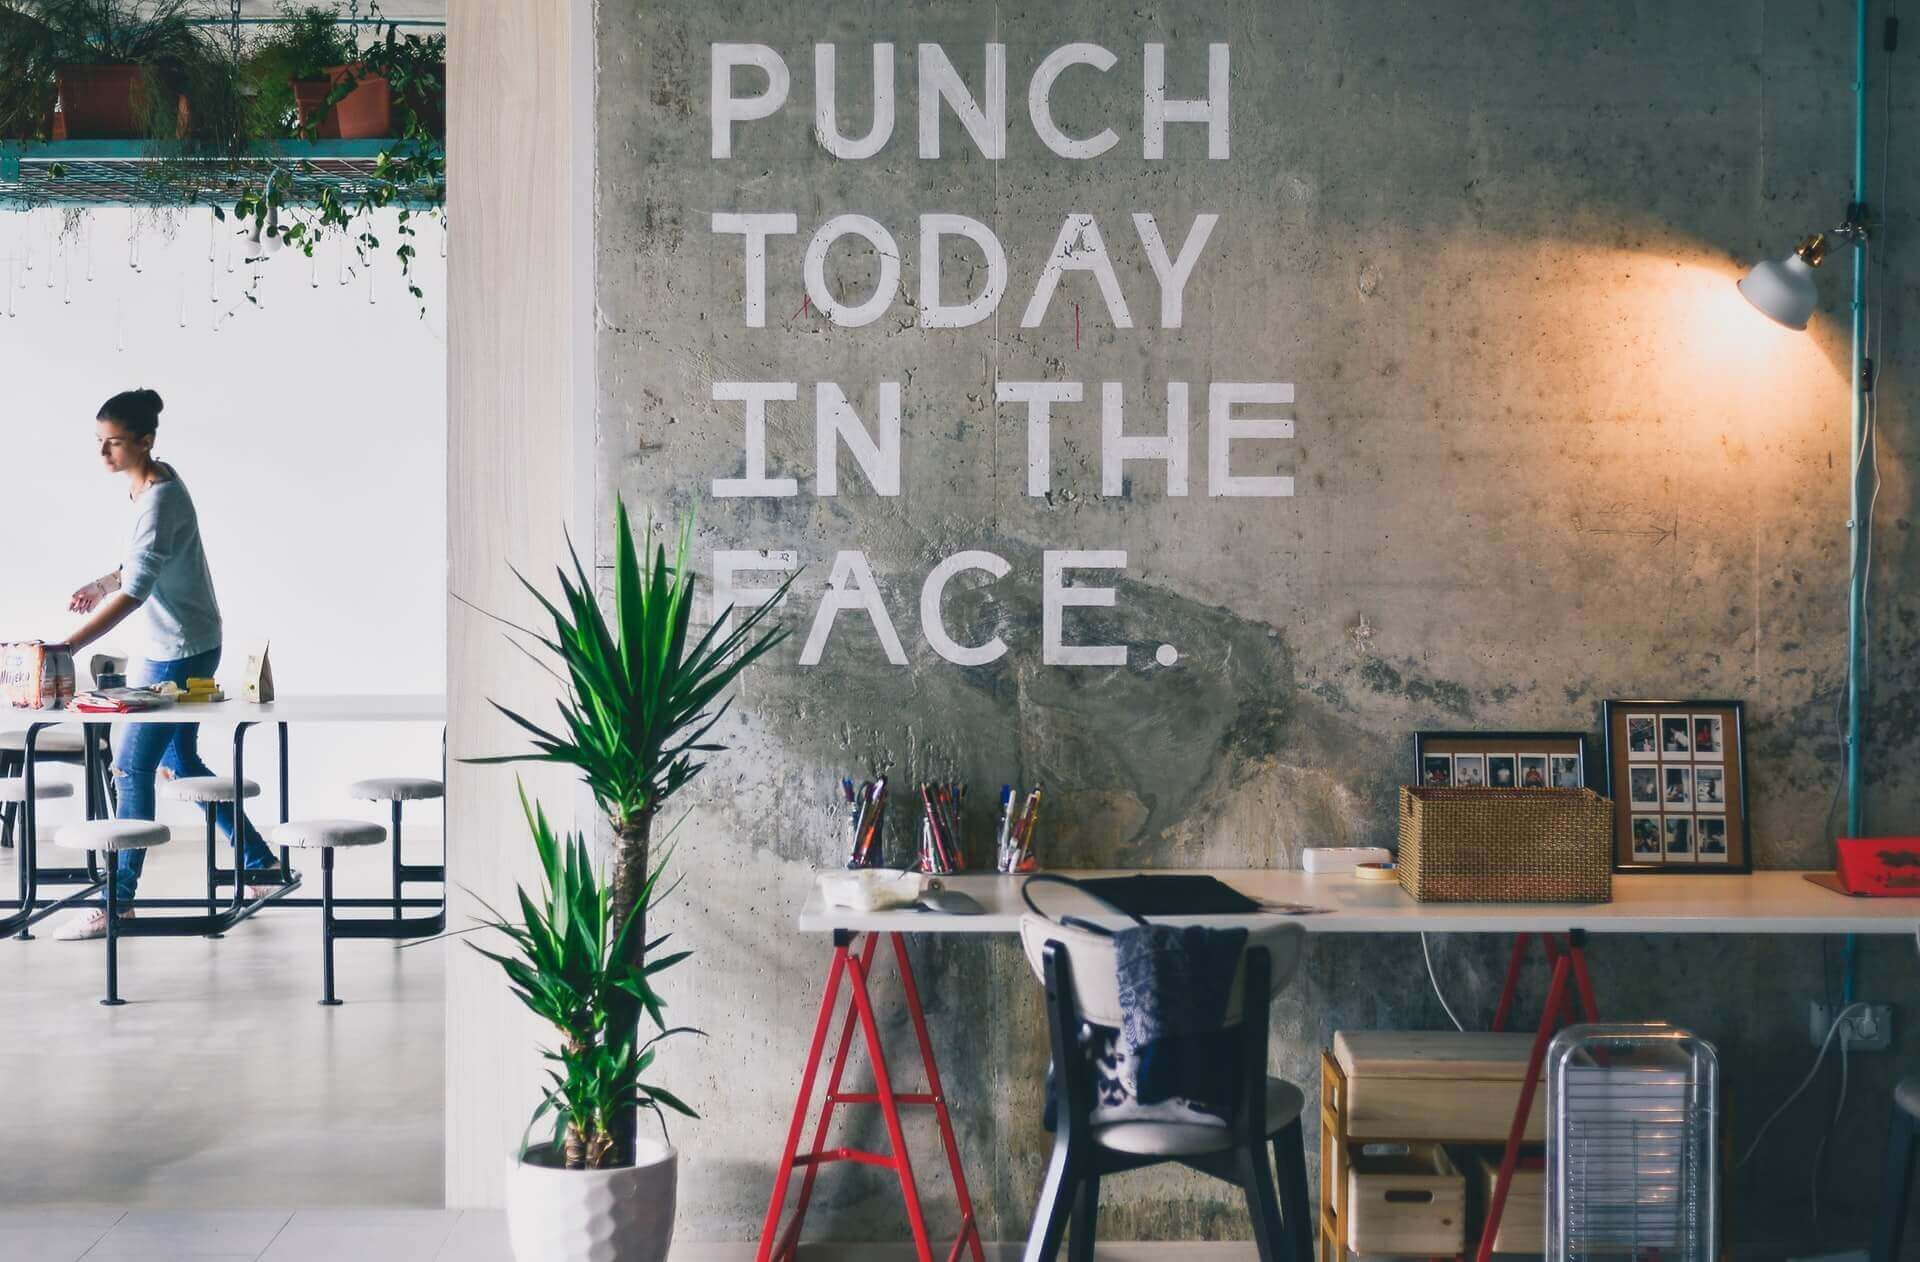 Punch today in the face motivation print